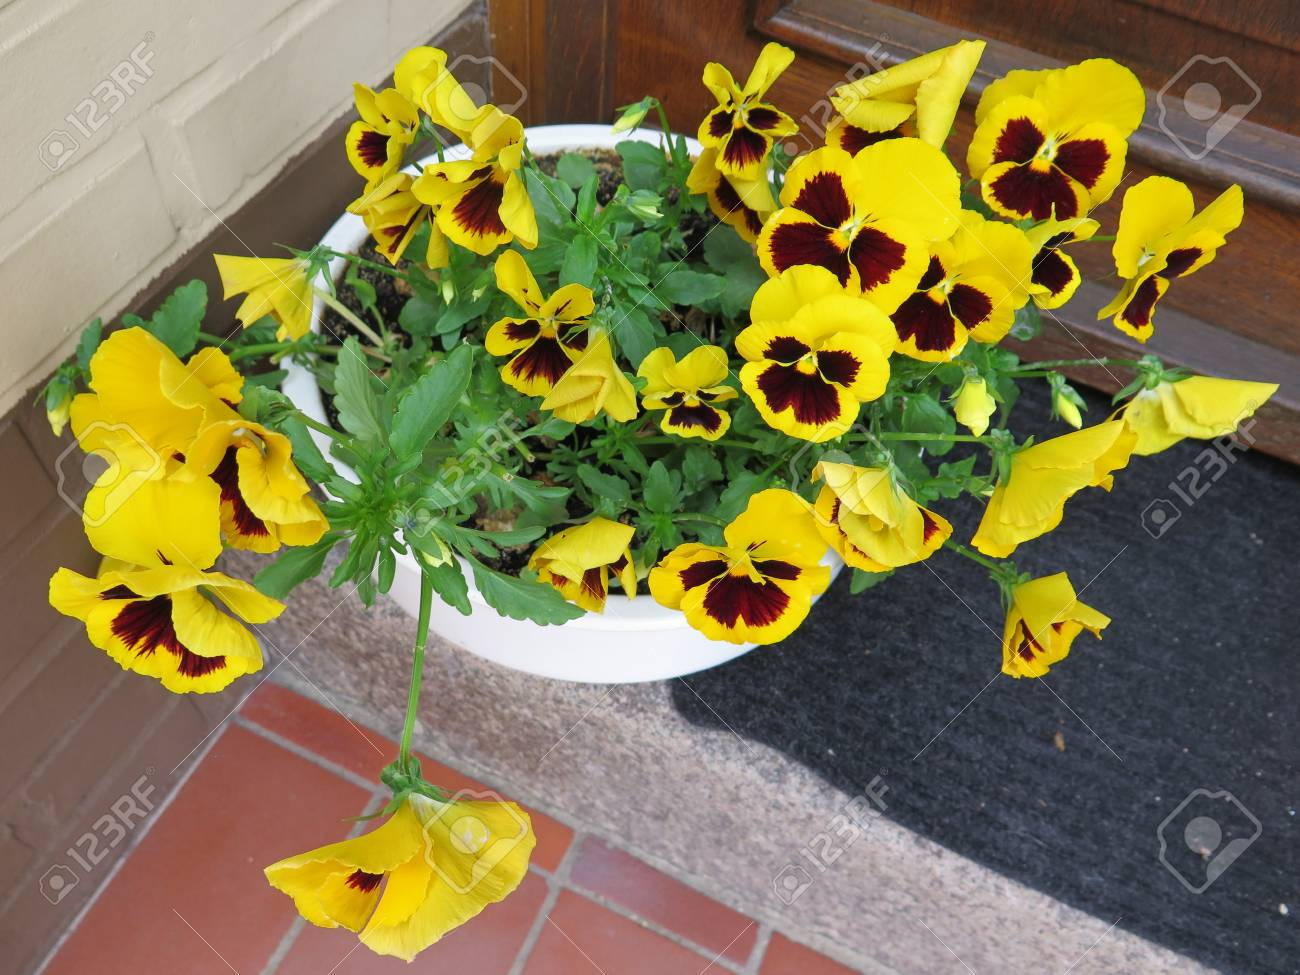 Yellow Pansy Flowers On Doorstep In German Town Stock Photo Picture